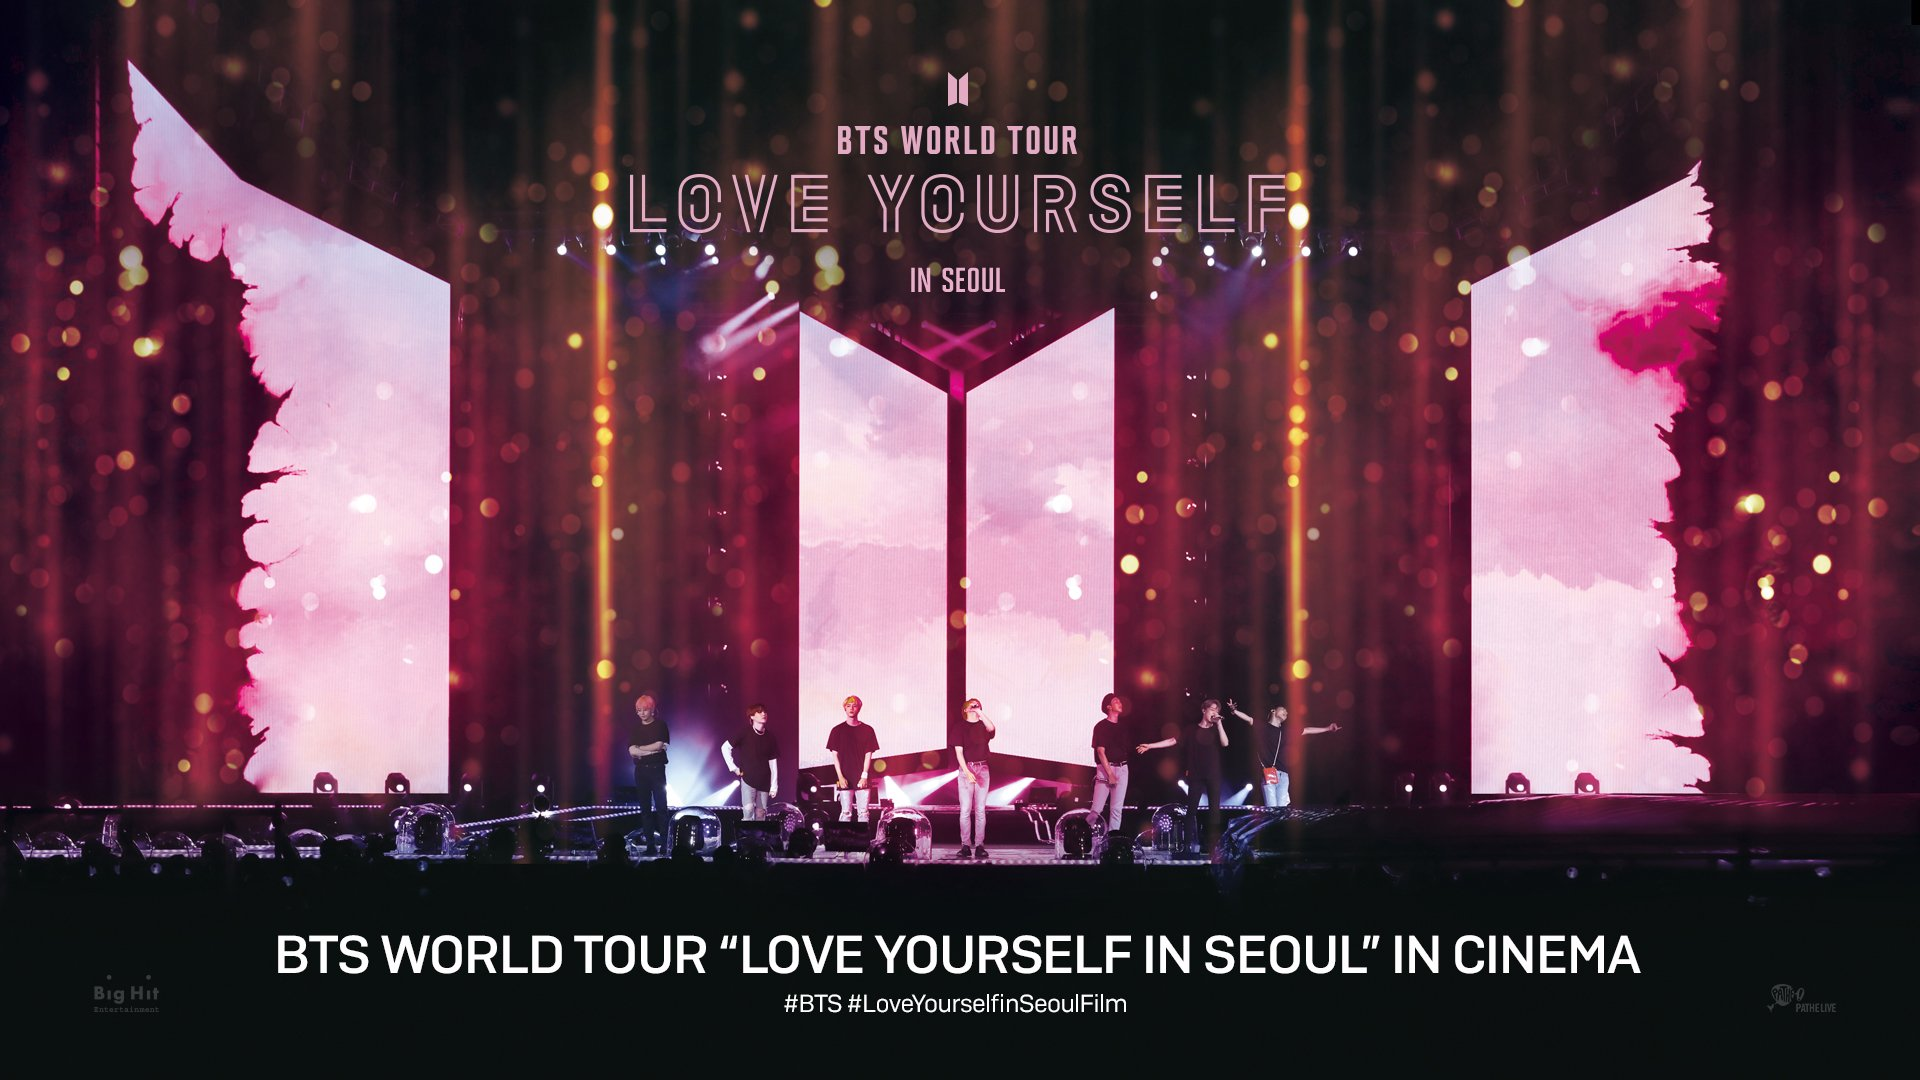 Pvr Dona Planet Guwahati Bts World Tour Love Yourself In Seoul